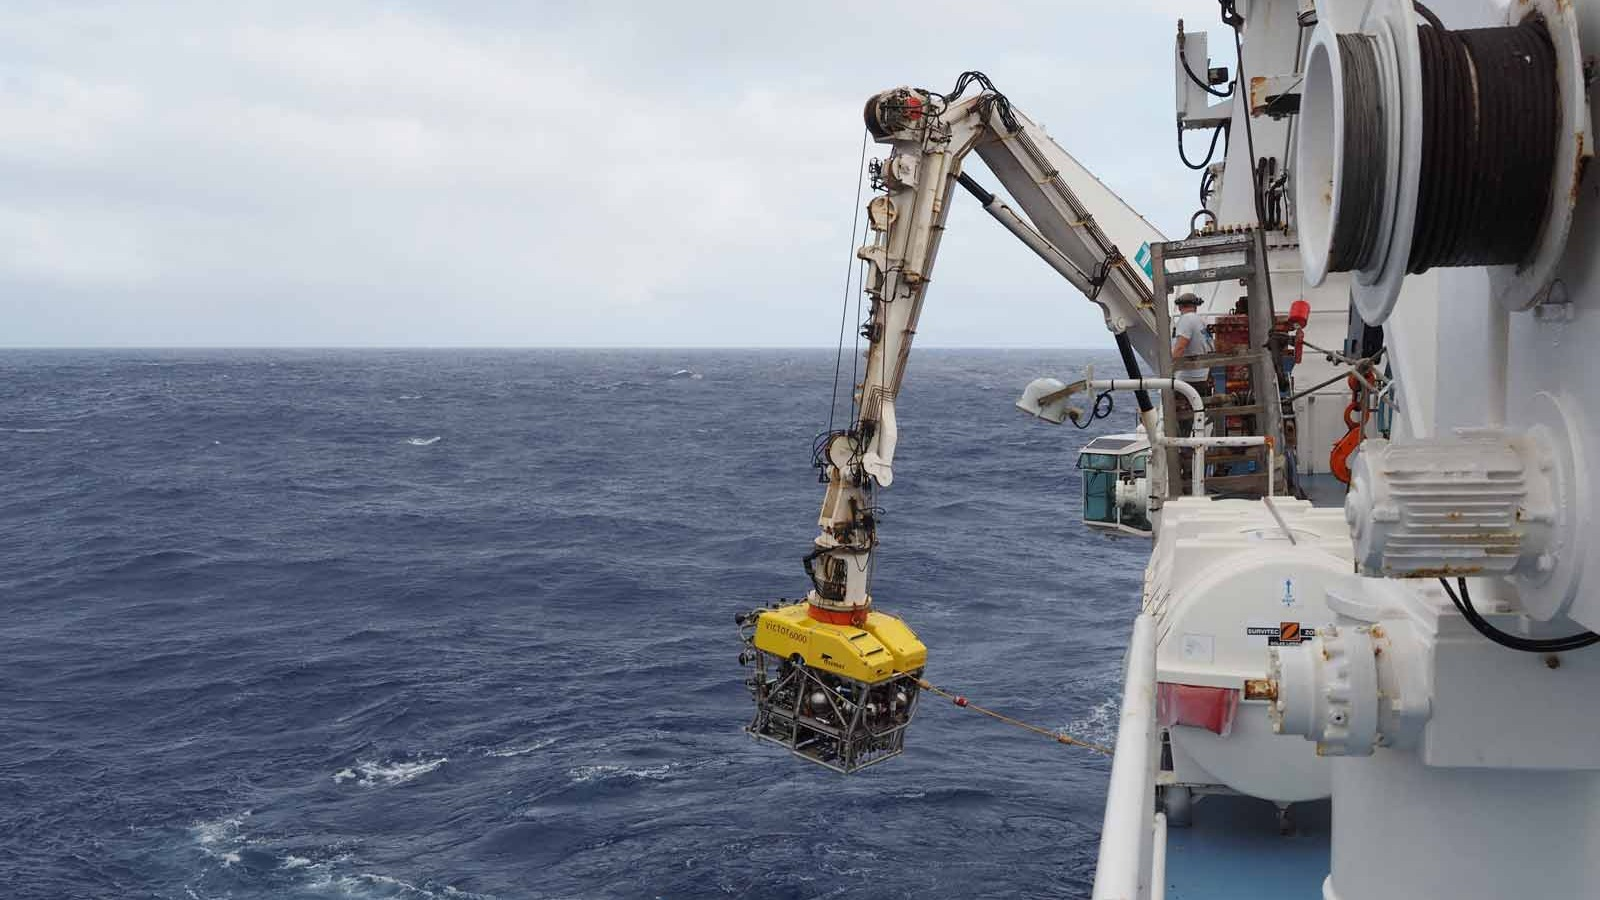 ROV-Victor-6000-is-lowered-into-the-water